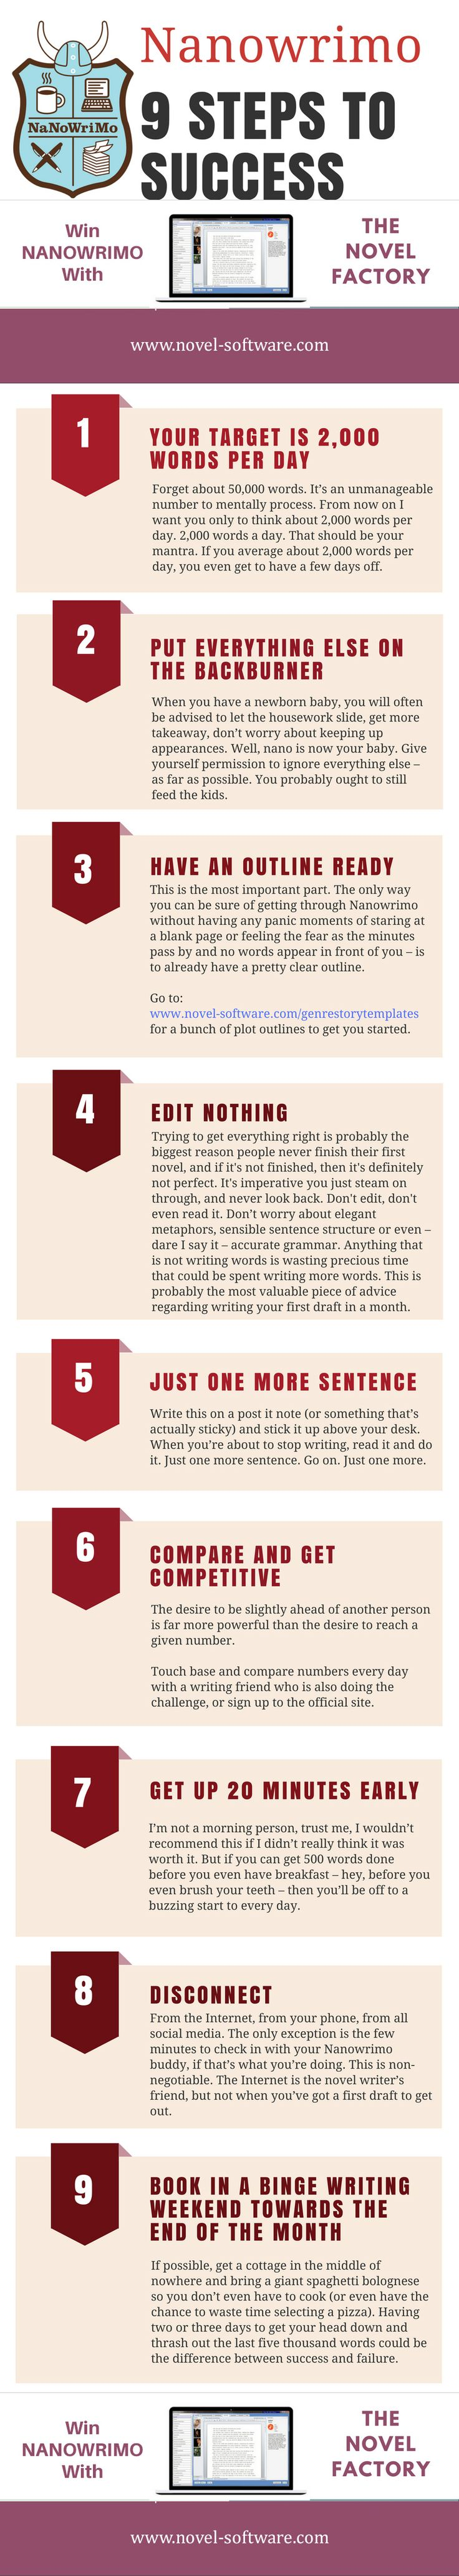 9 Steps to National Novel Writing Month (#Nanowrimo) Success!